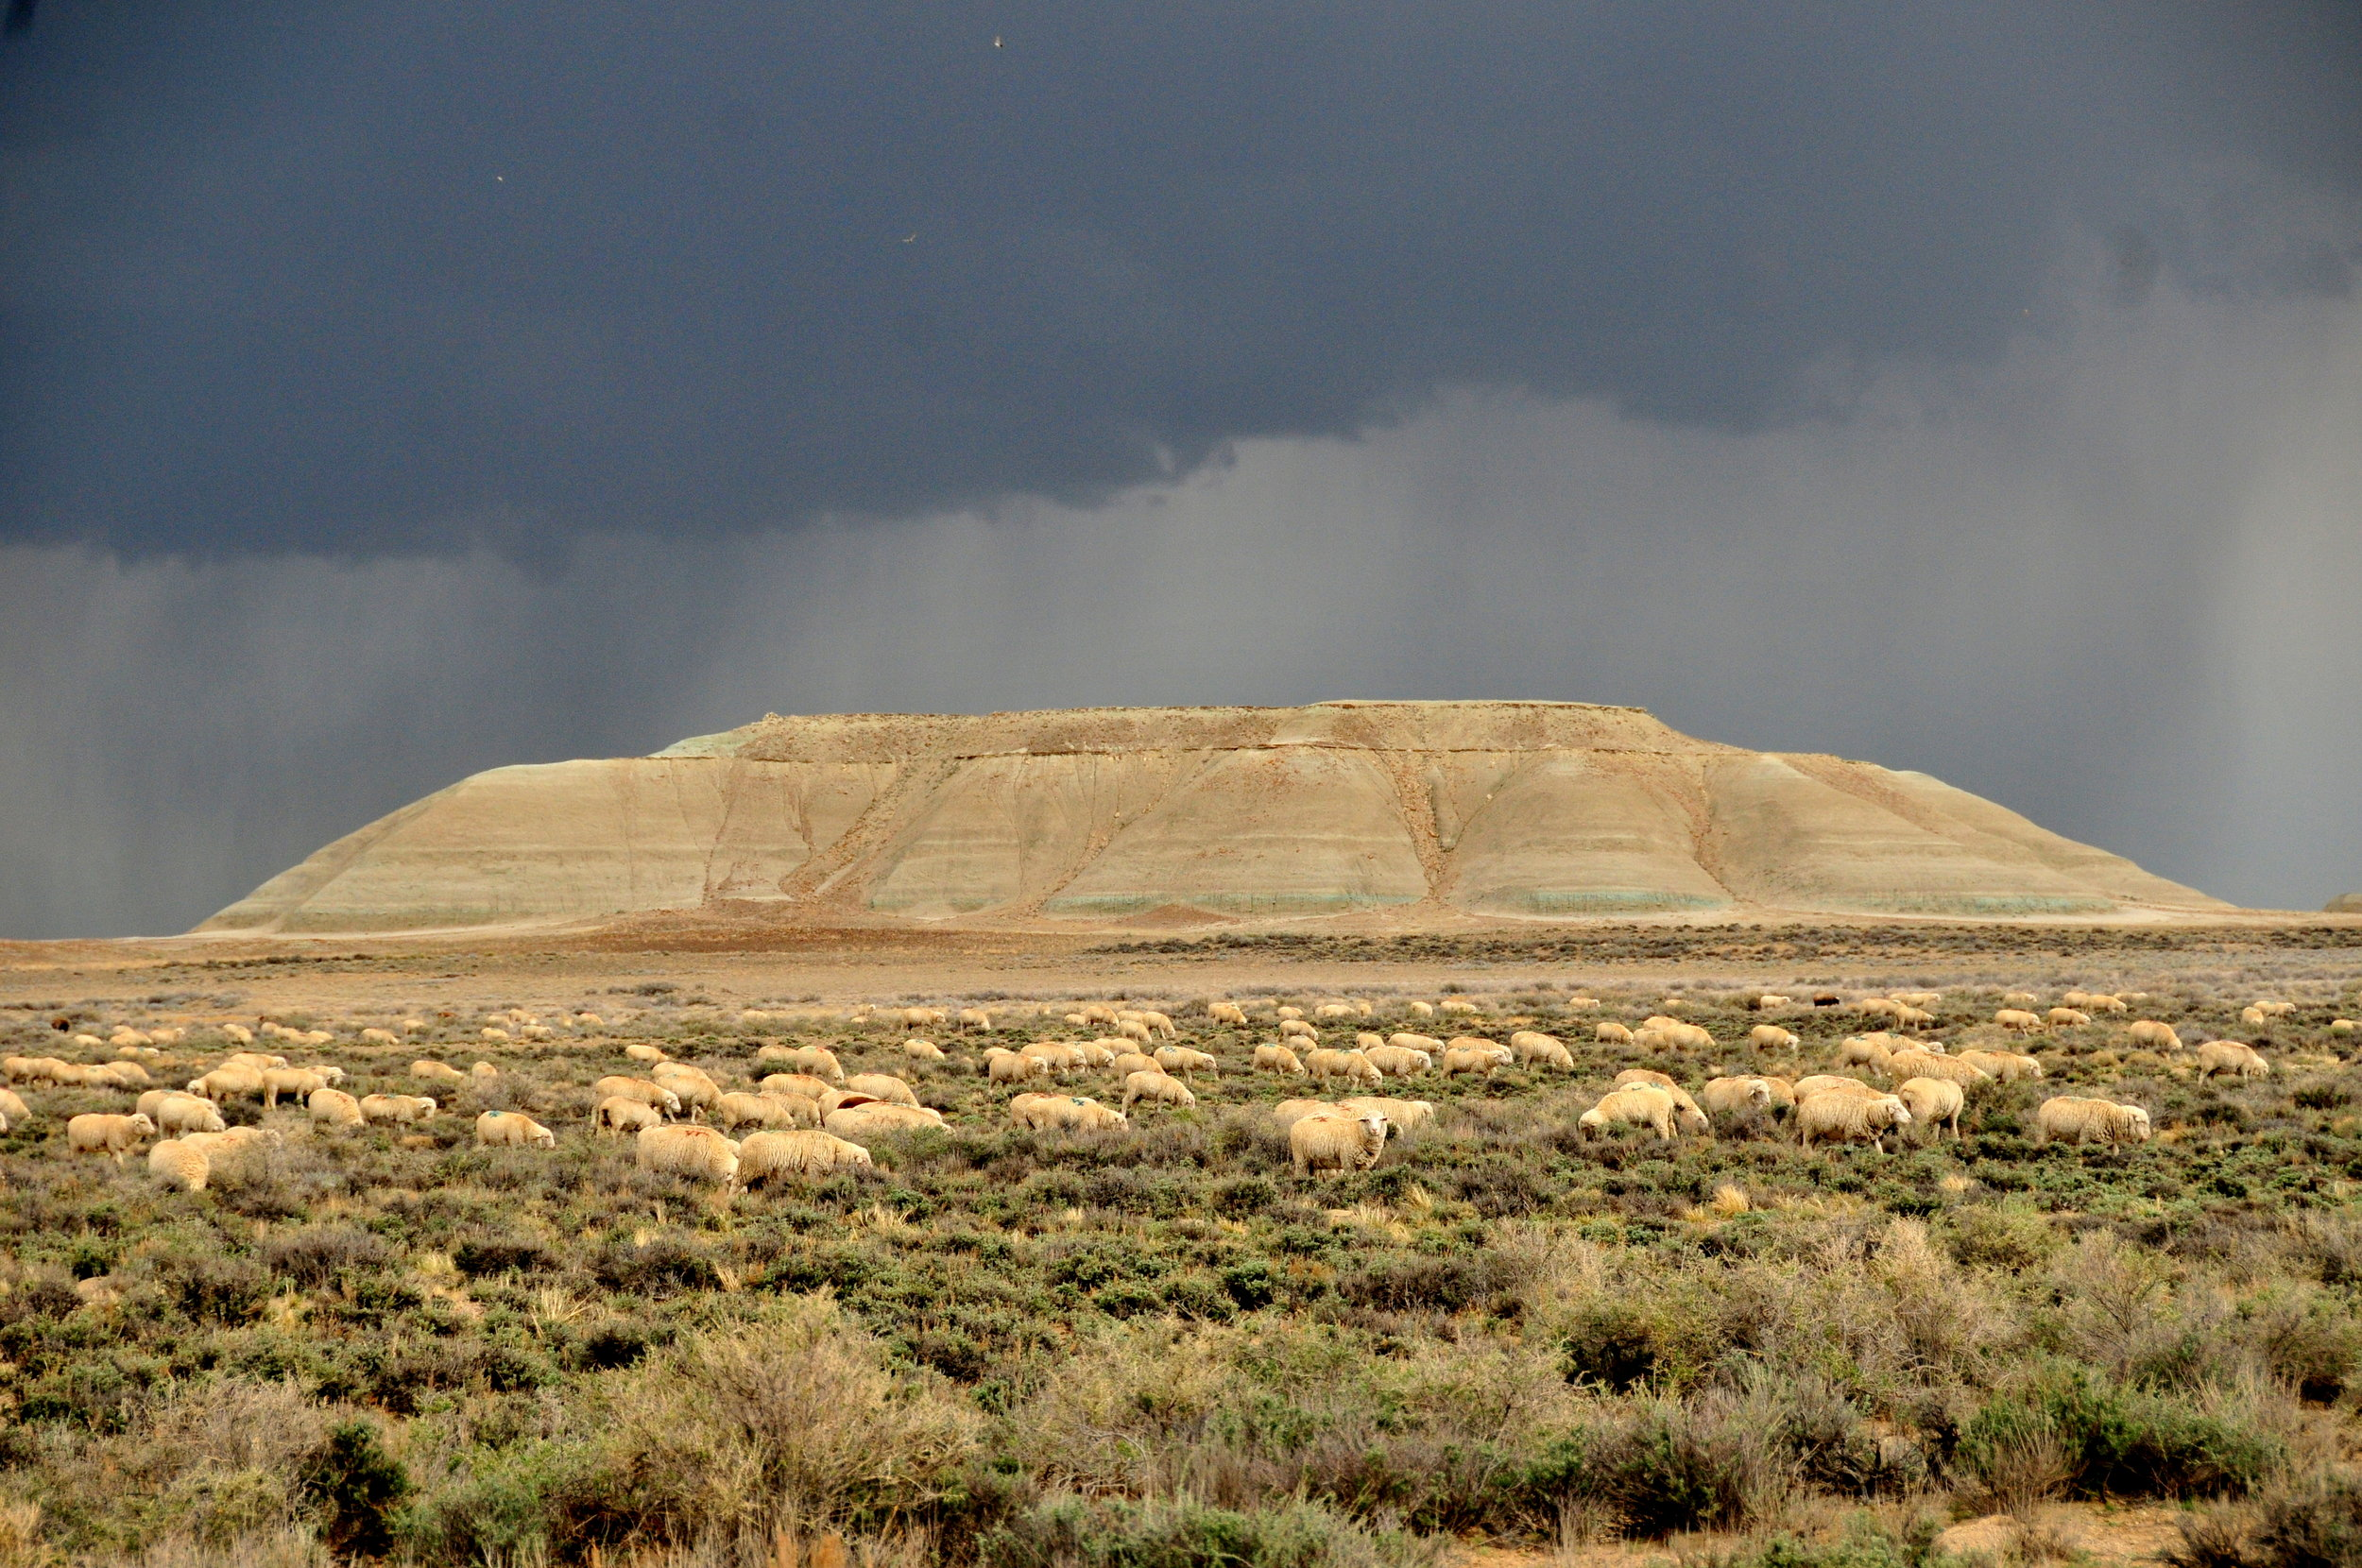 Photo by Tom Koerner/USFWS. Photo shows rangeland in Wyoming with sheep and a mountain in the background.